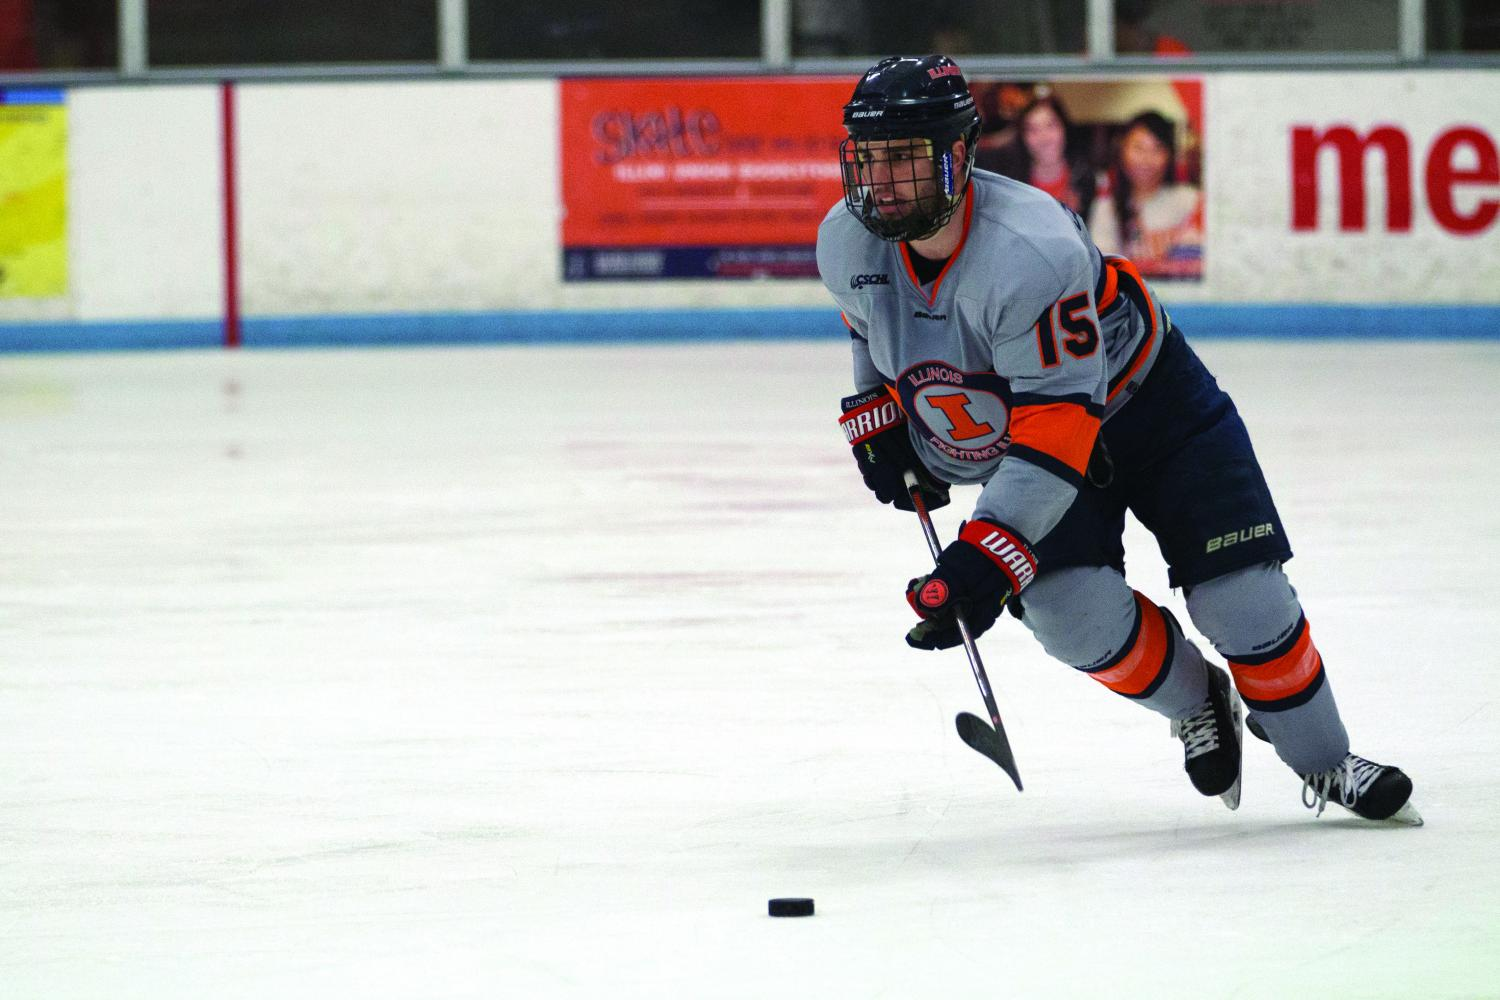 Eric Cruickshank (15) gains possession of the puck and takes it up the ice to Robert Morris' zone at the Ice Arena on Saturday, Feb. 18. Illini fell to Robert Morris 3-2.